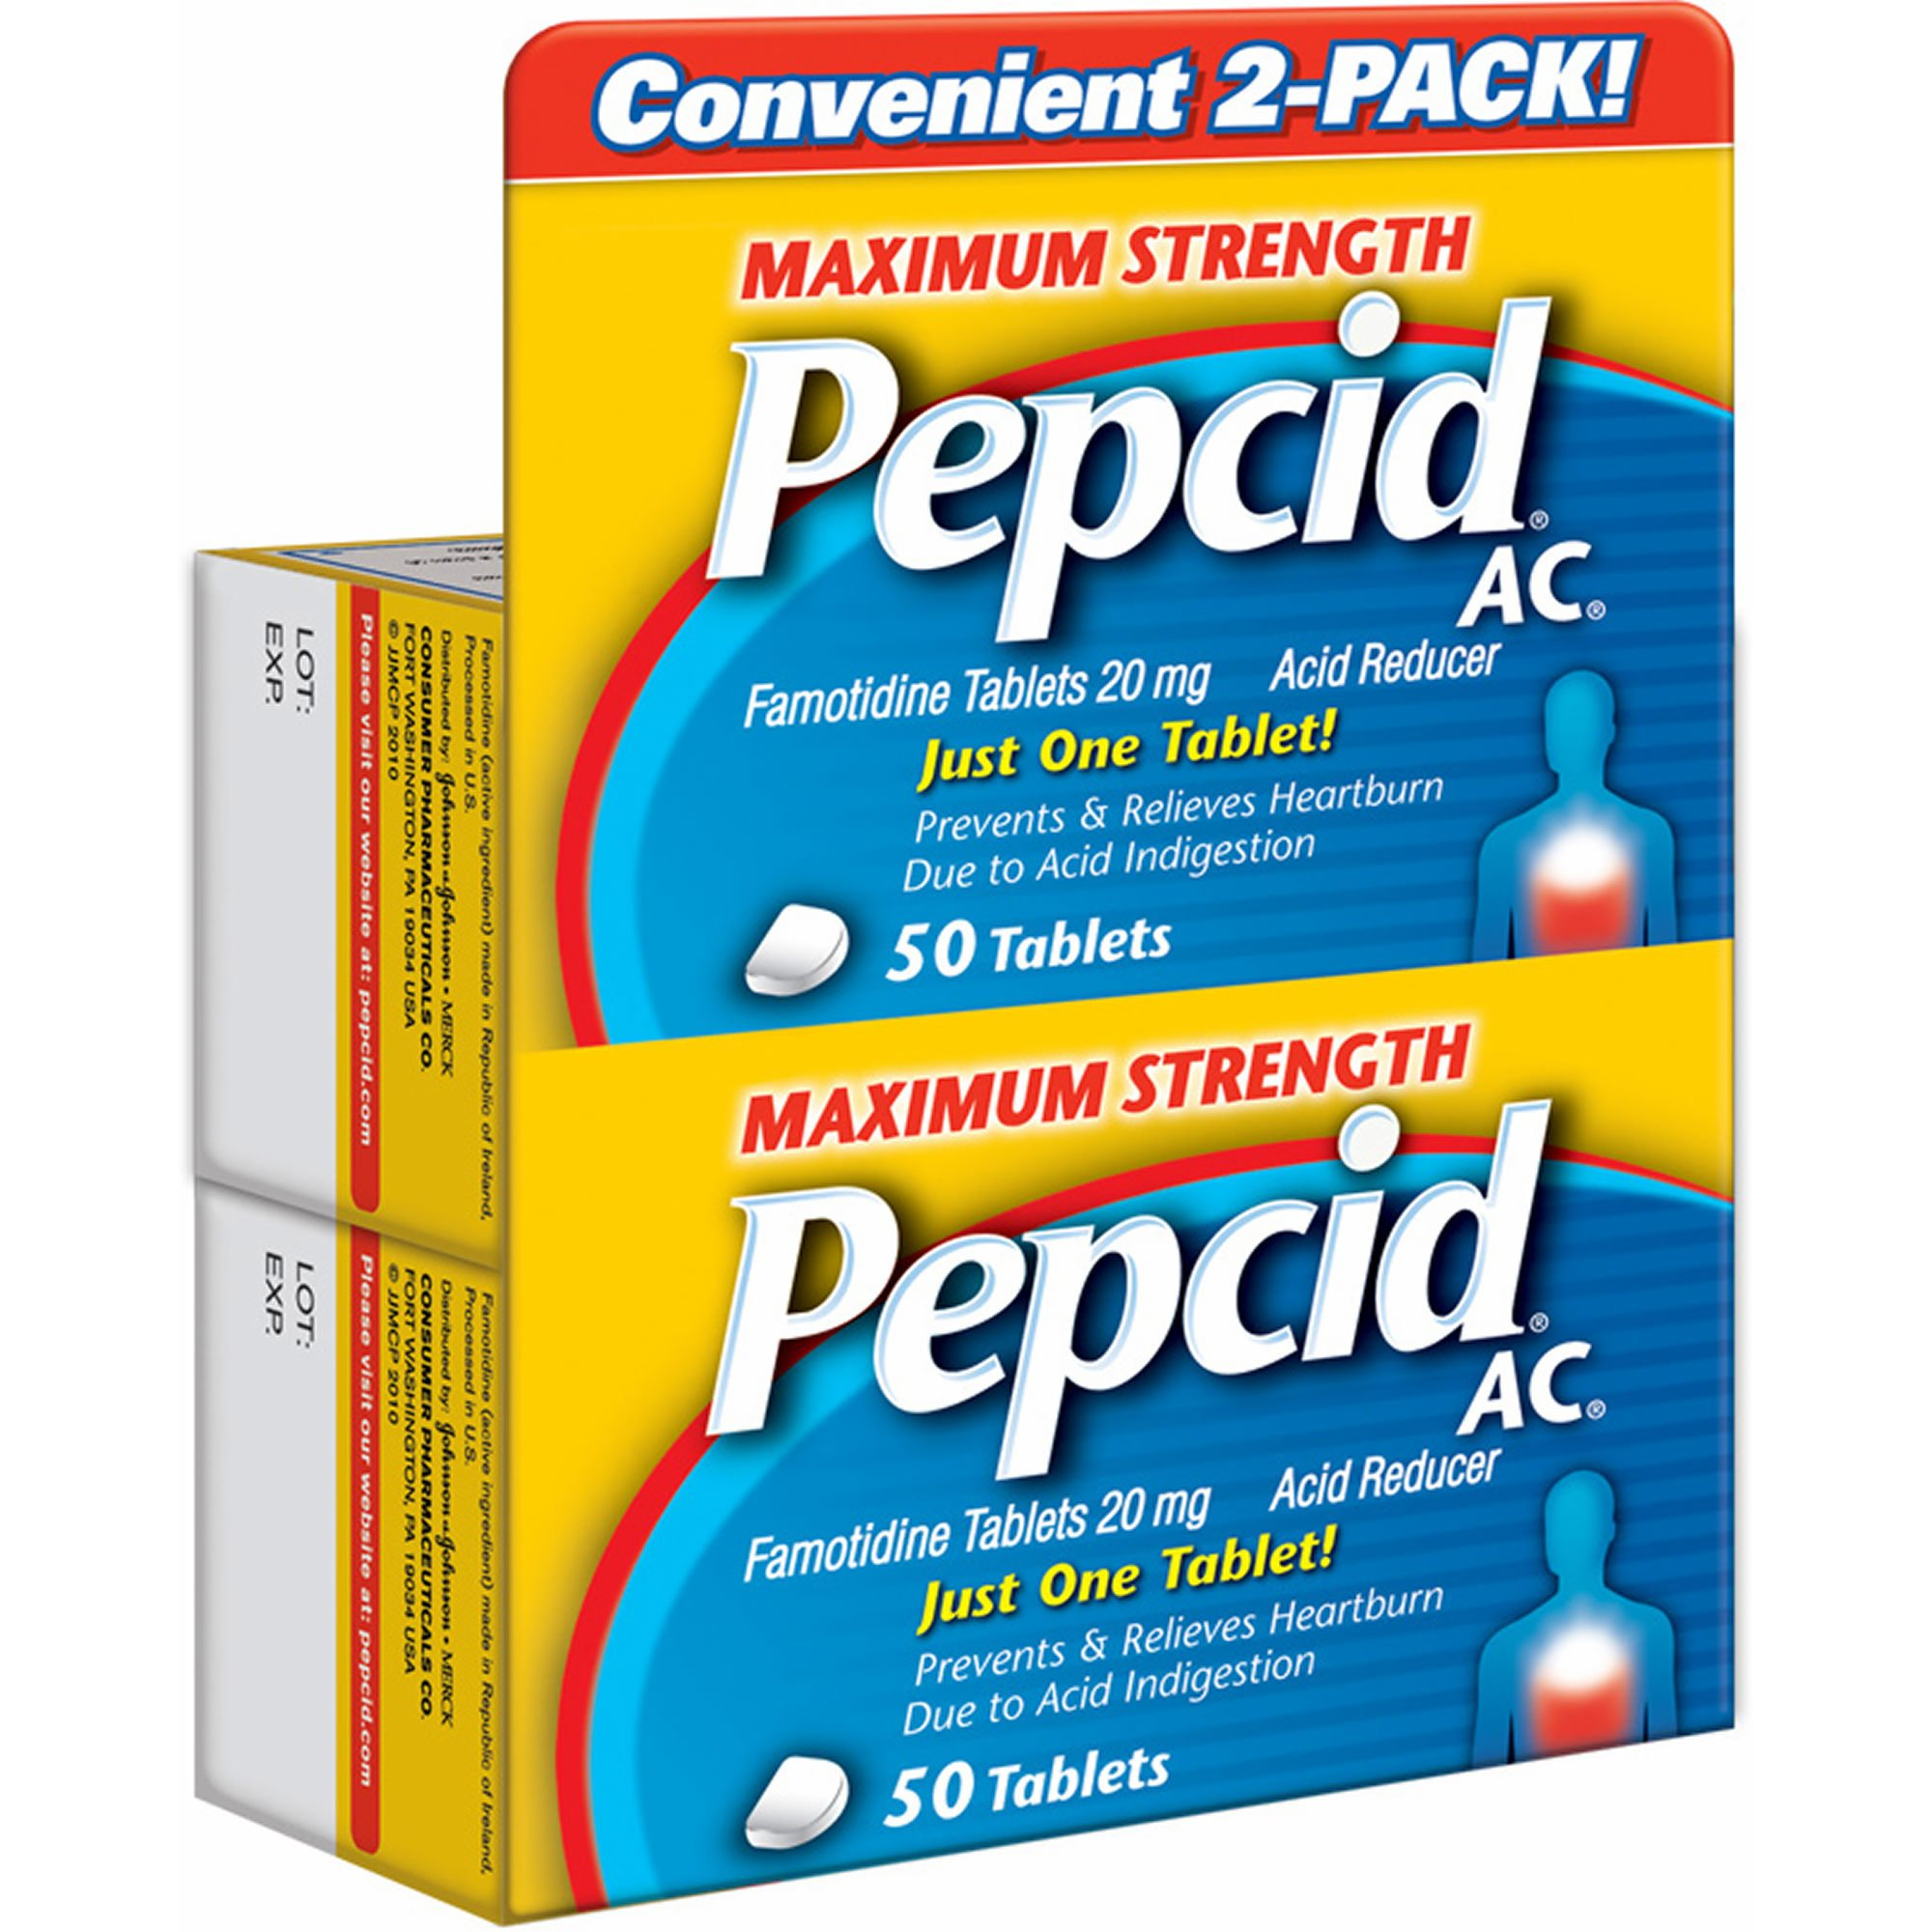 Pepcid AC Maximum Strength 20mg Acid Reducer Tablets, 100 ct. (pack of 6)